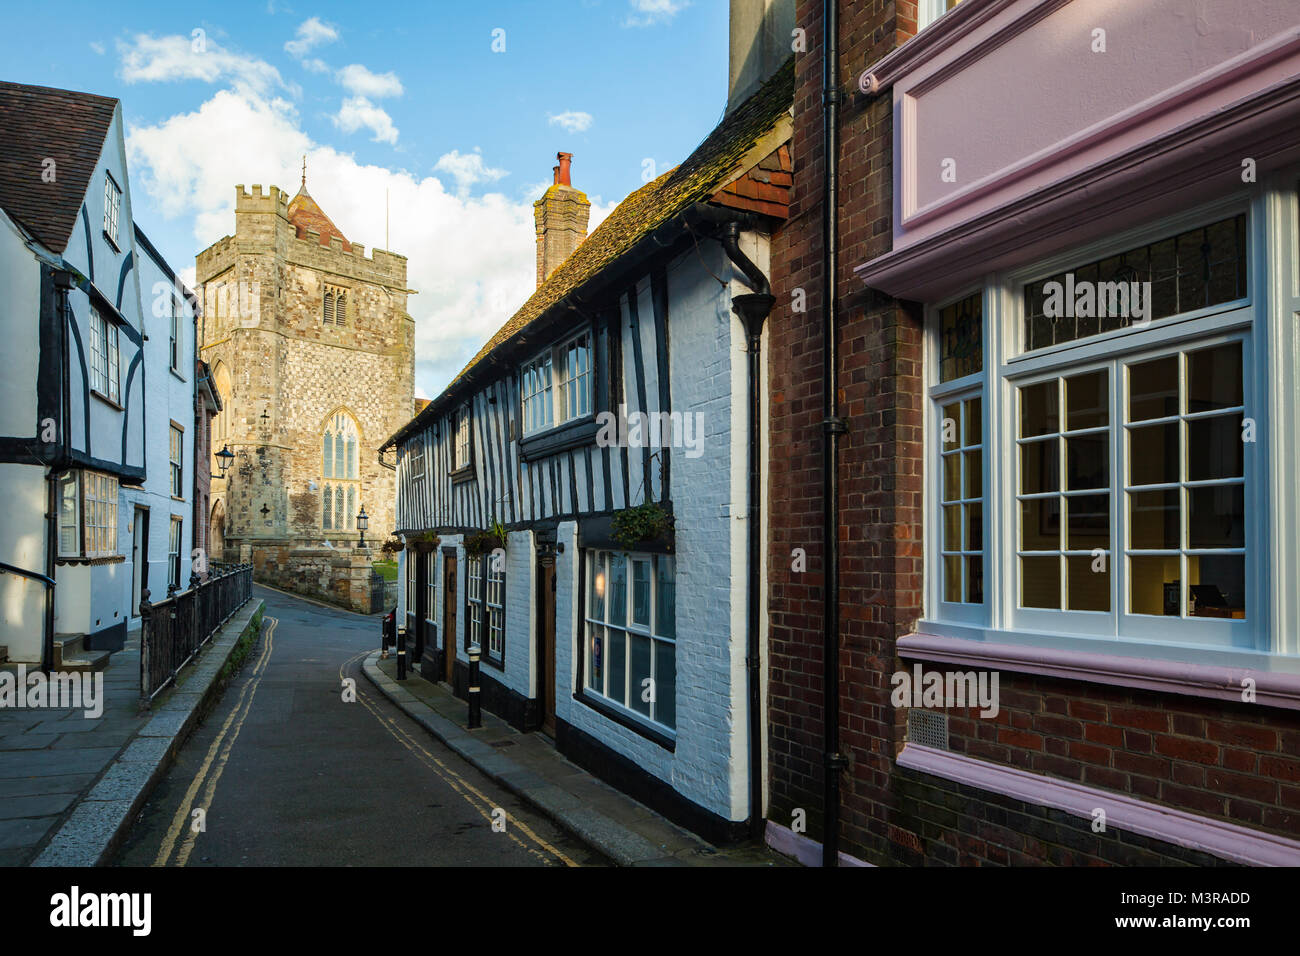 Hastings old town, East Sussex, UK. - Stock Image